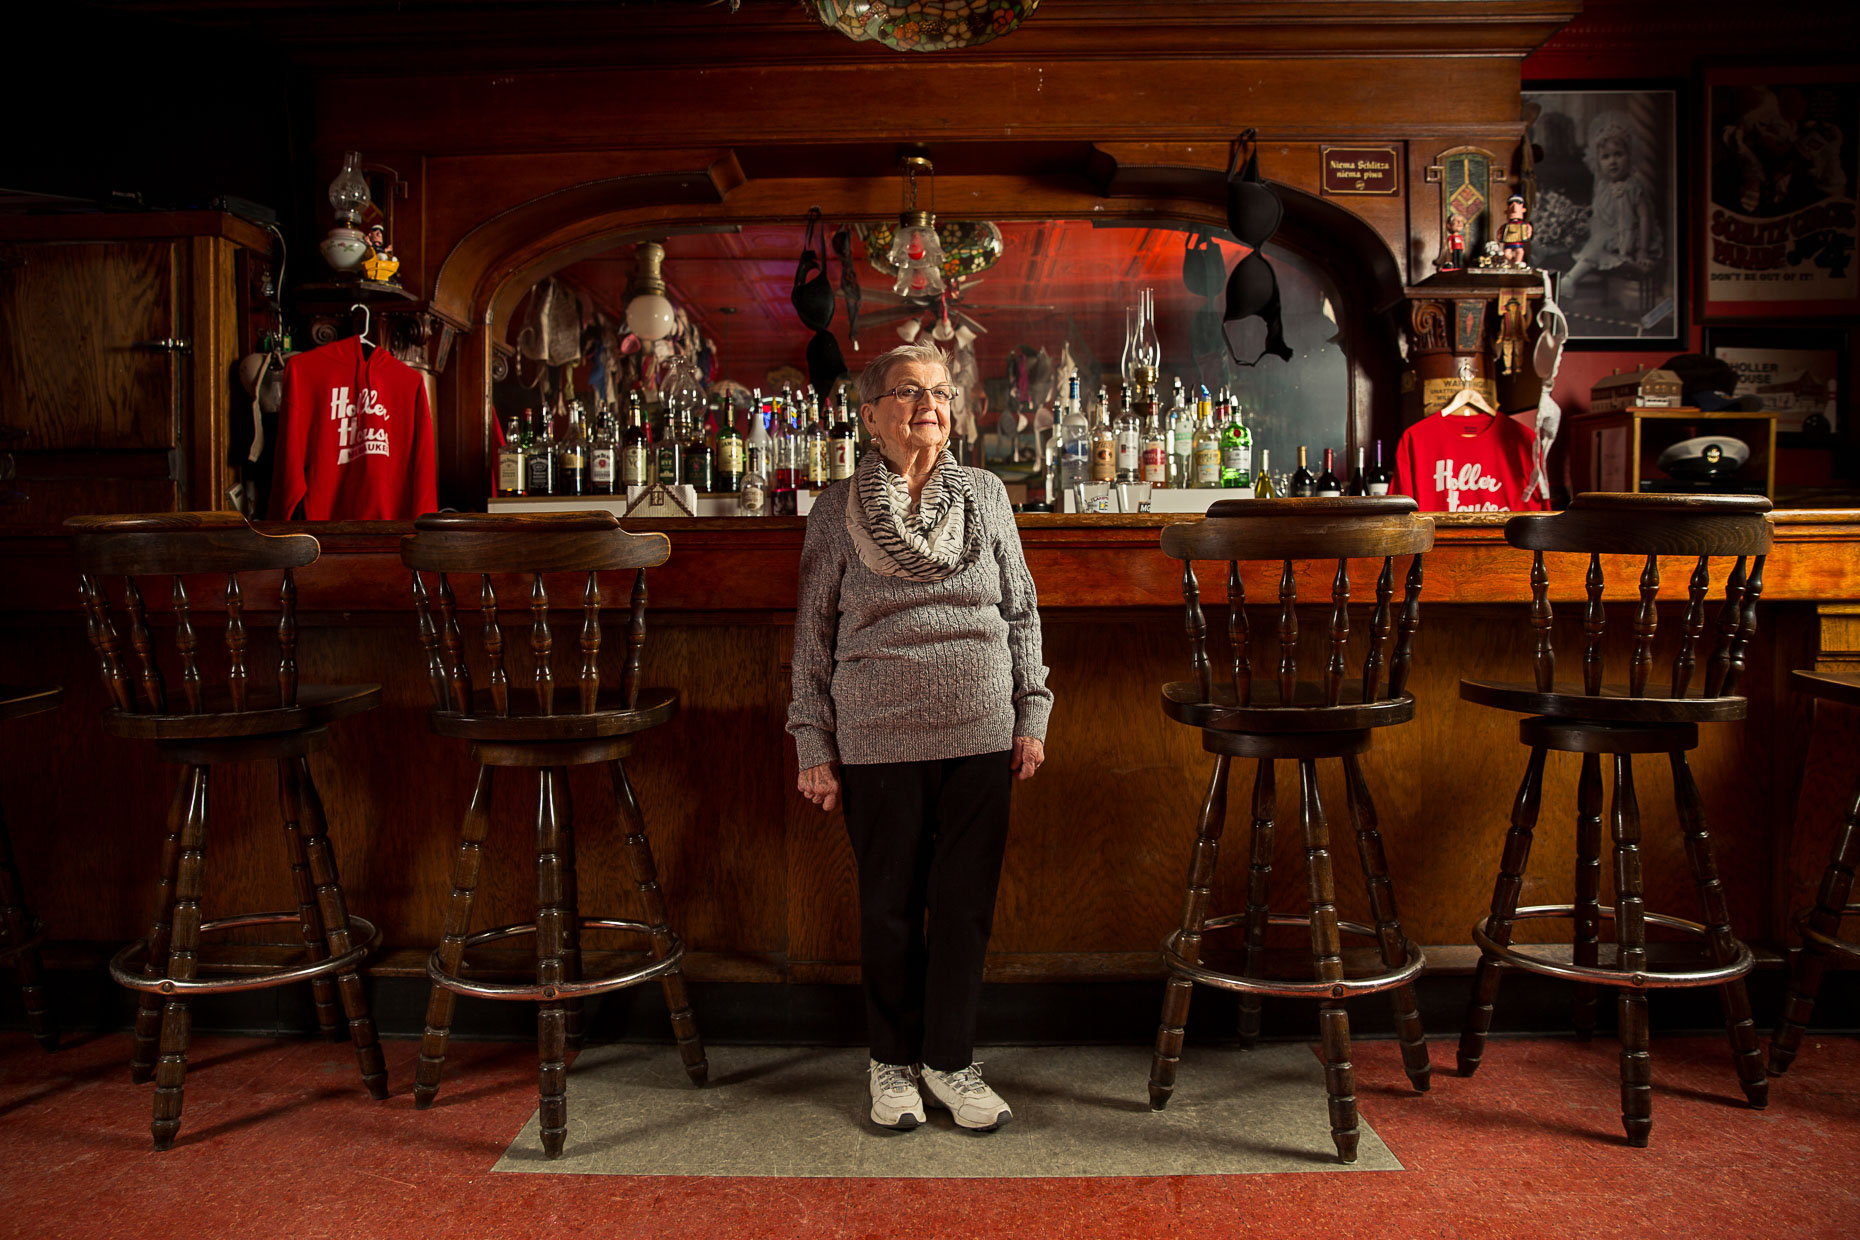 Marcy Skowronski, owner of The Holler House on the South side of Milwaukee Wisconsin, a tavern that houses the oldest sanctioned bowling alley in the United States.